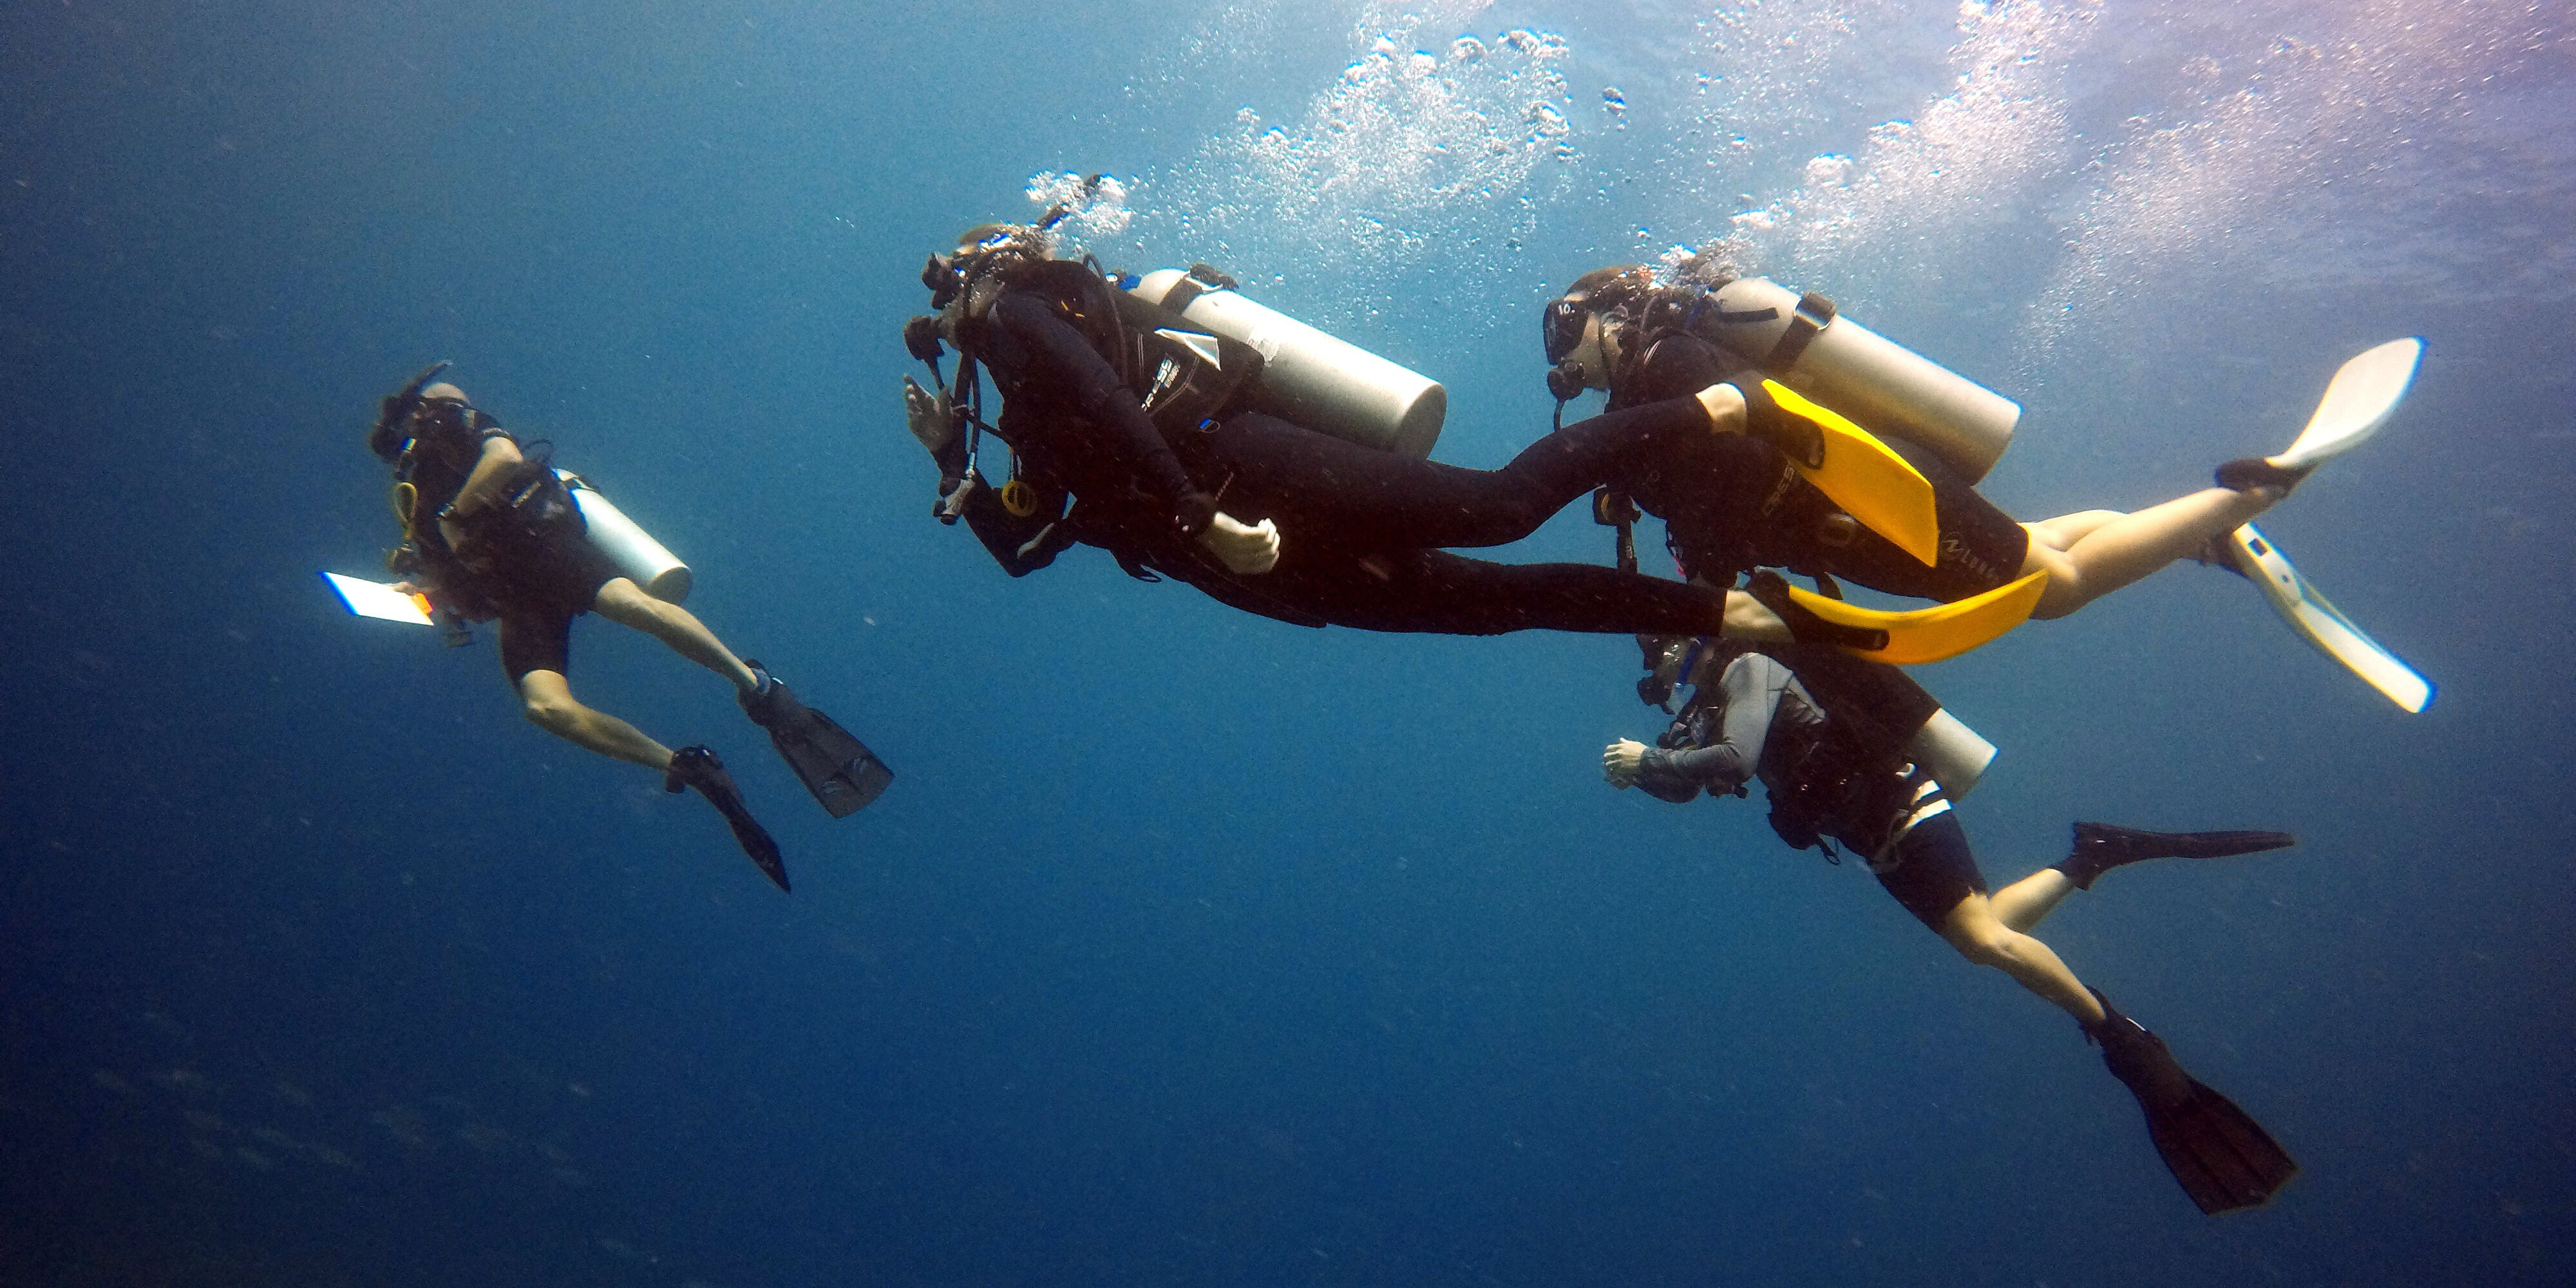 While taking a gap year, GVI participants learn diving skills in Mahe, Seychelles.